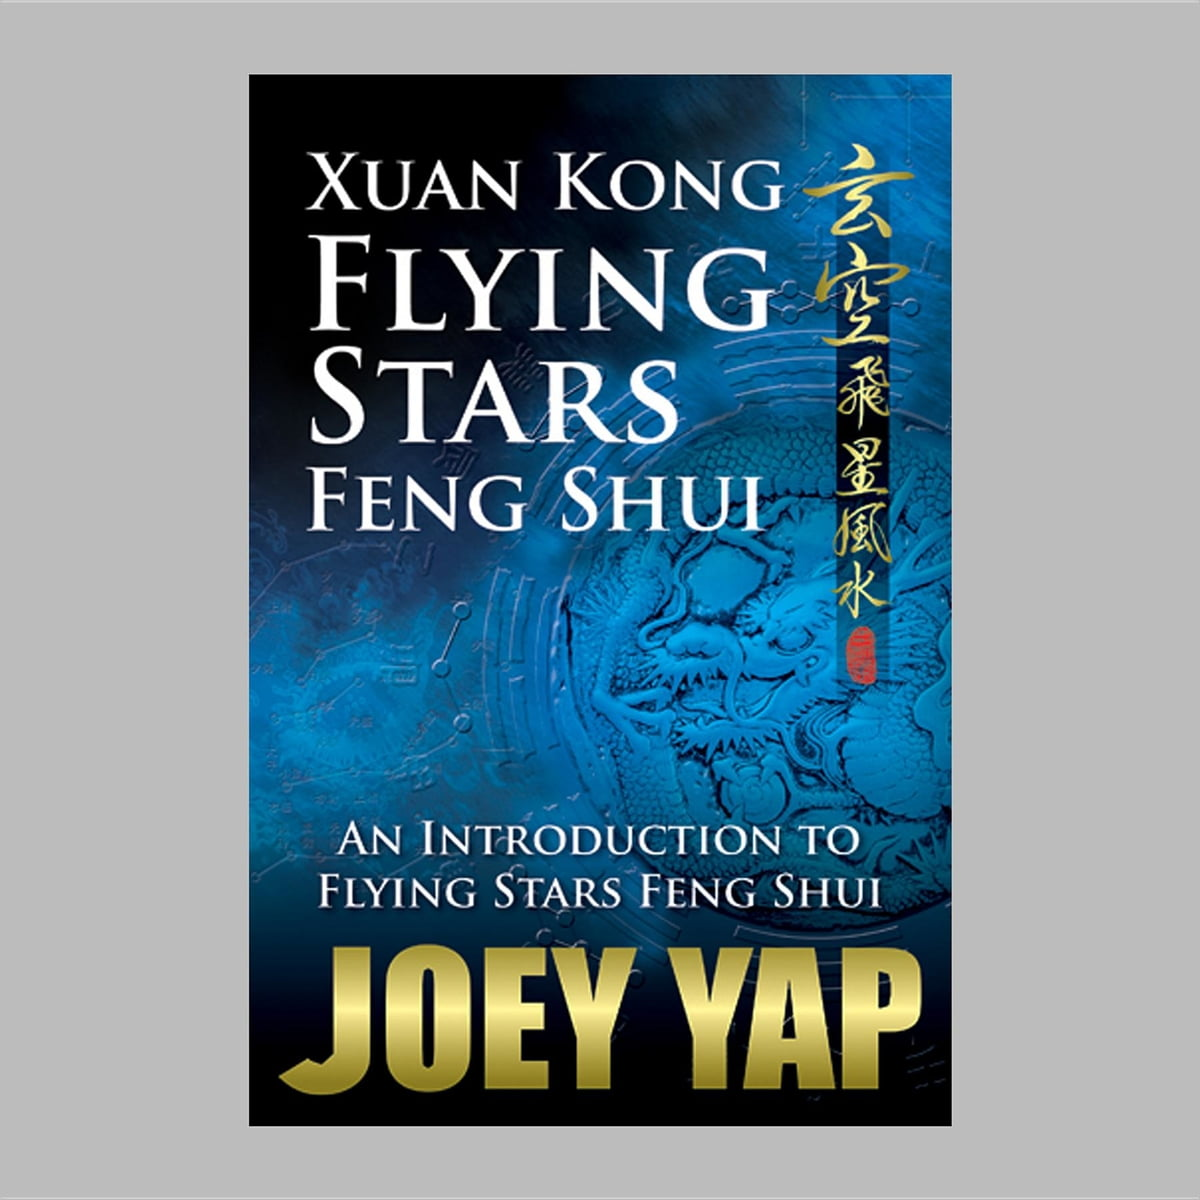 Xuan Kong Flying Stars Feng Shui eBook by Yap Joey - 9789833332533 |  Rakuten Kobo